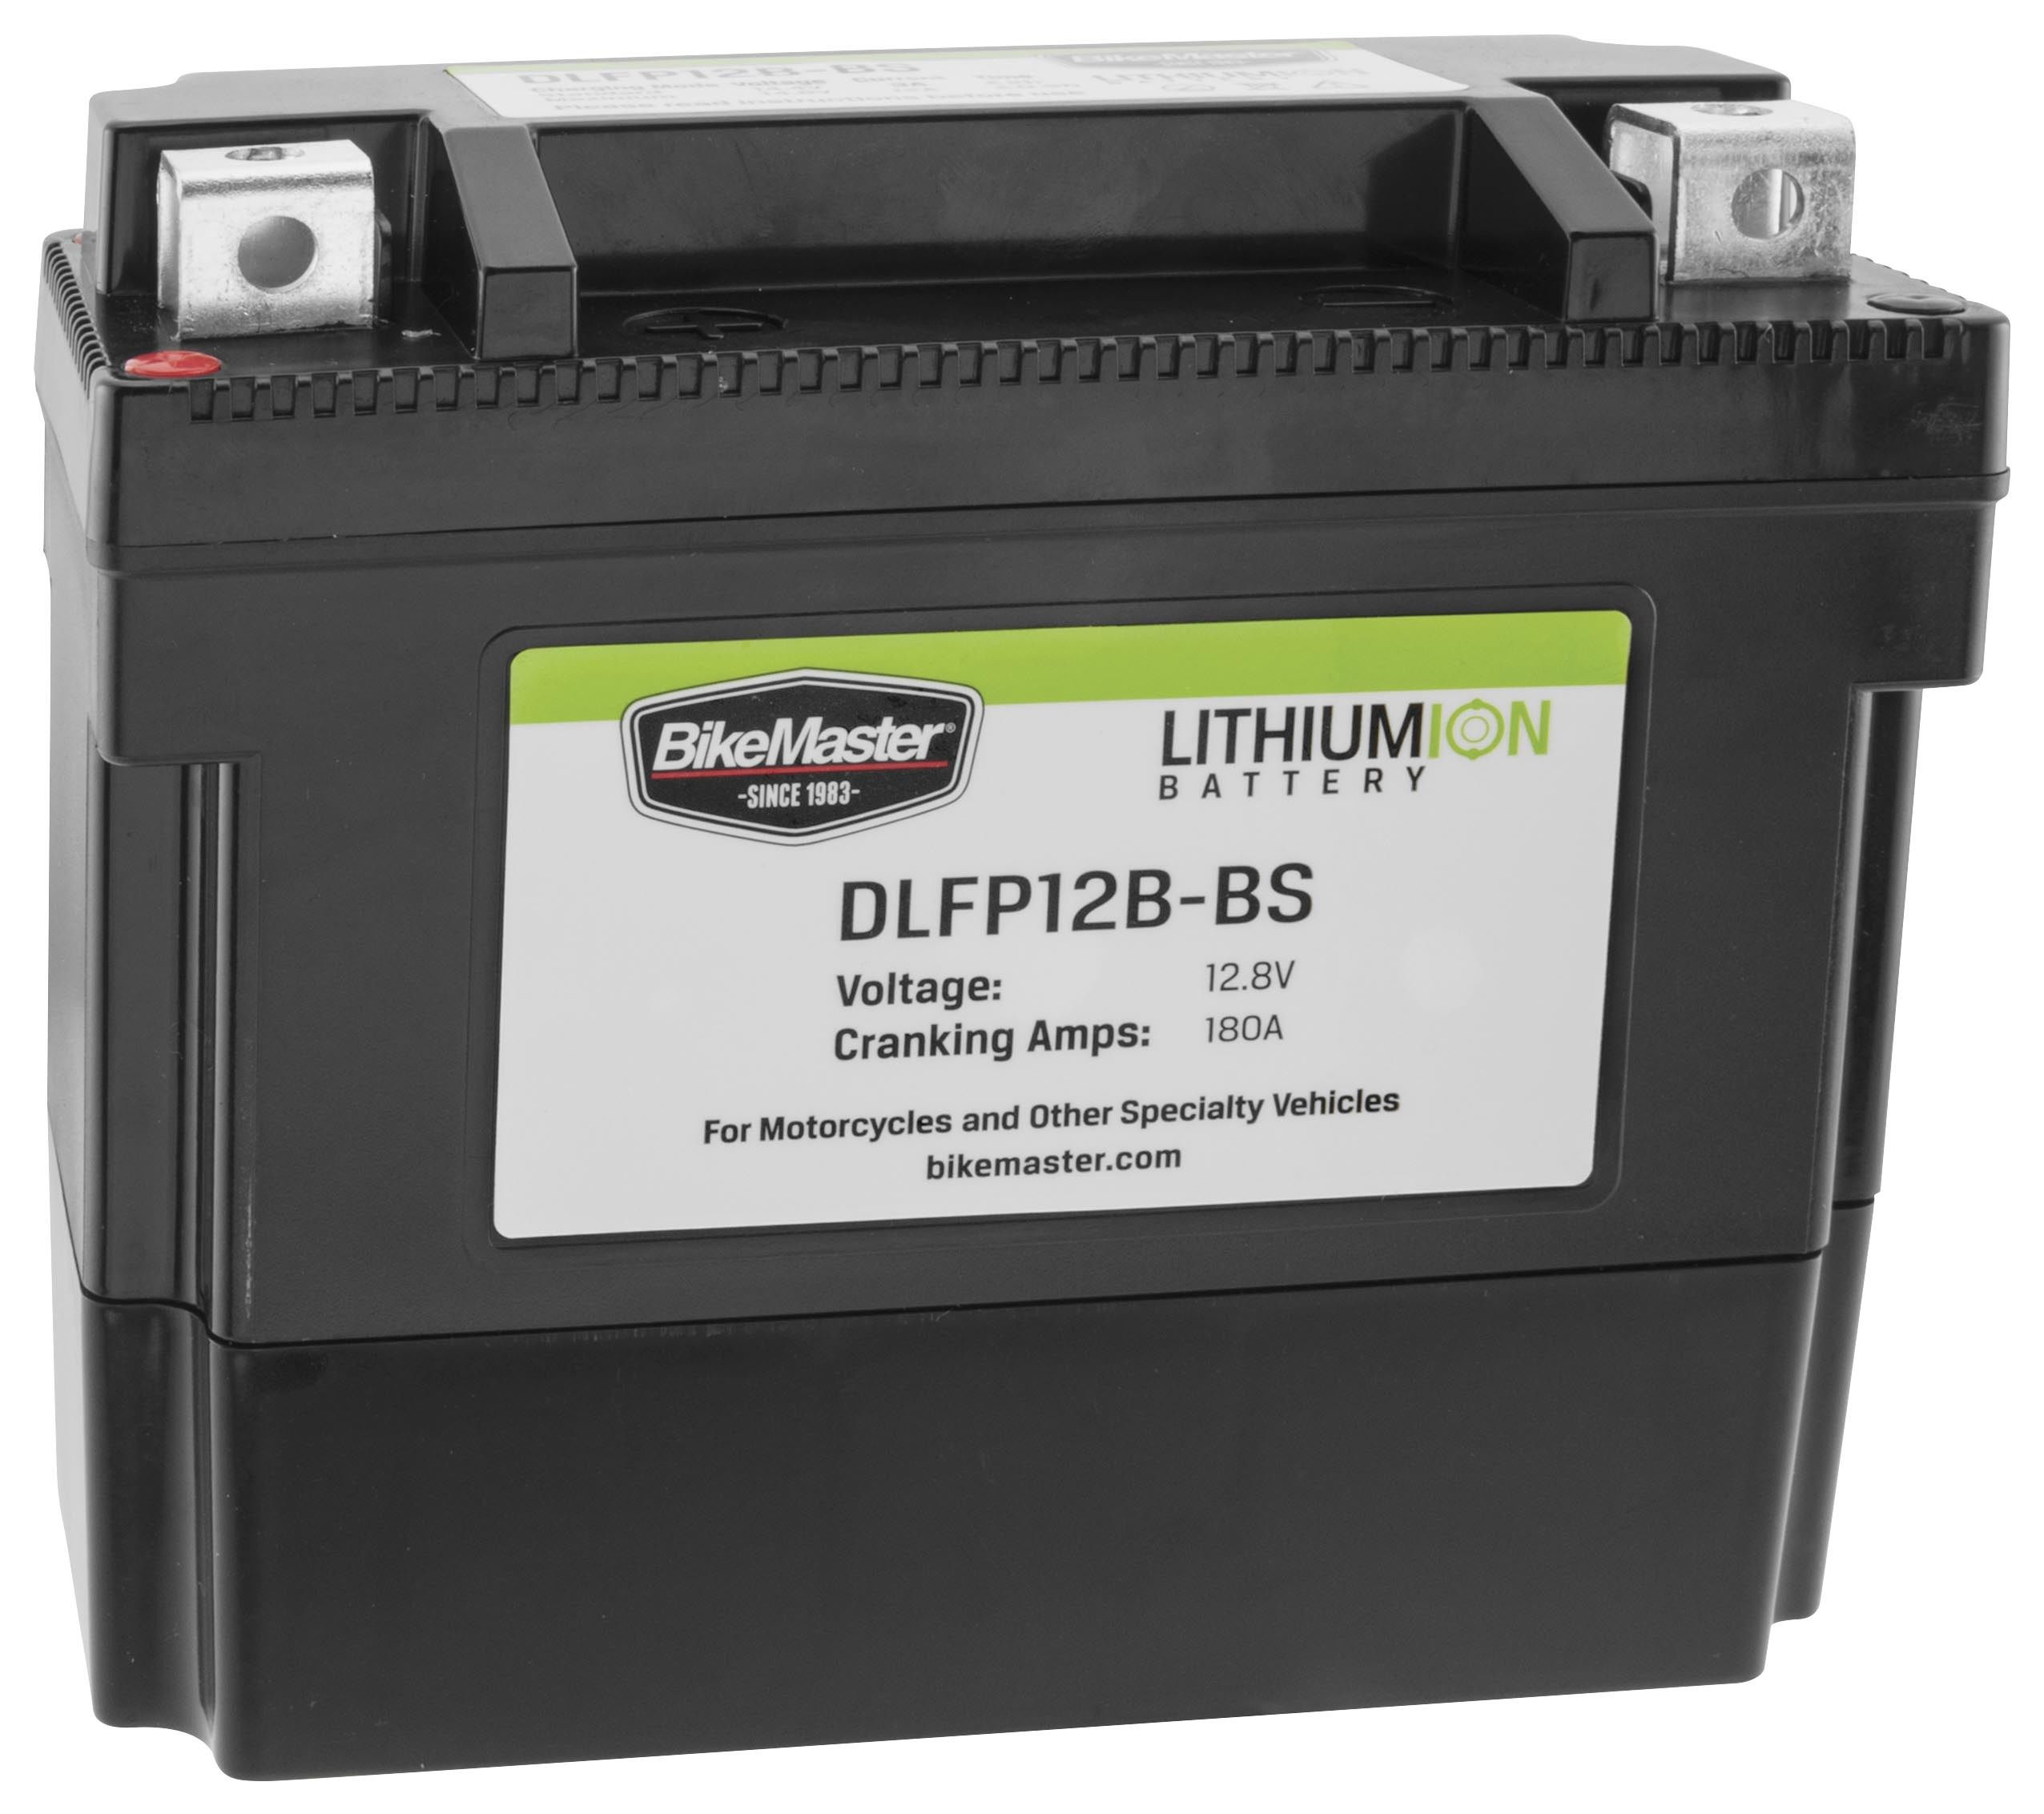 Bike Master Lithium Ion Battery DLFP-12B-BS | 10% ($14.99) Off ...